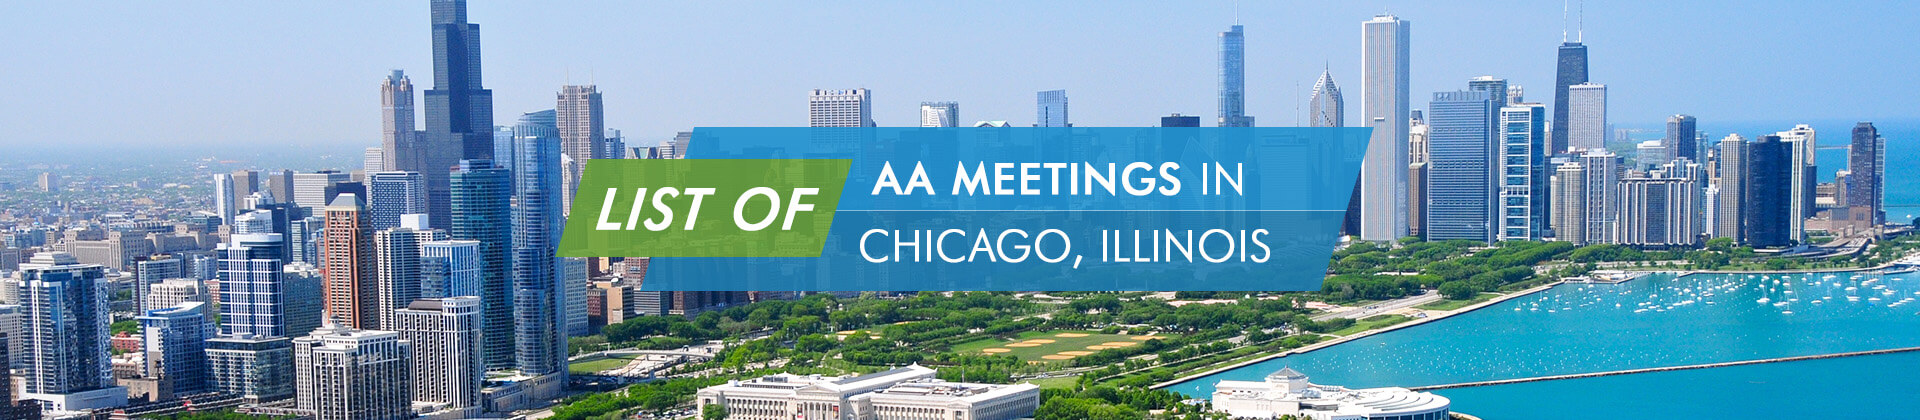 AA Meetings Chicago, Illinois